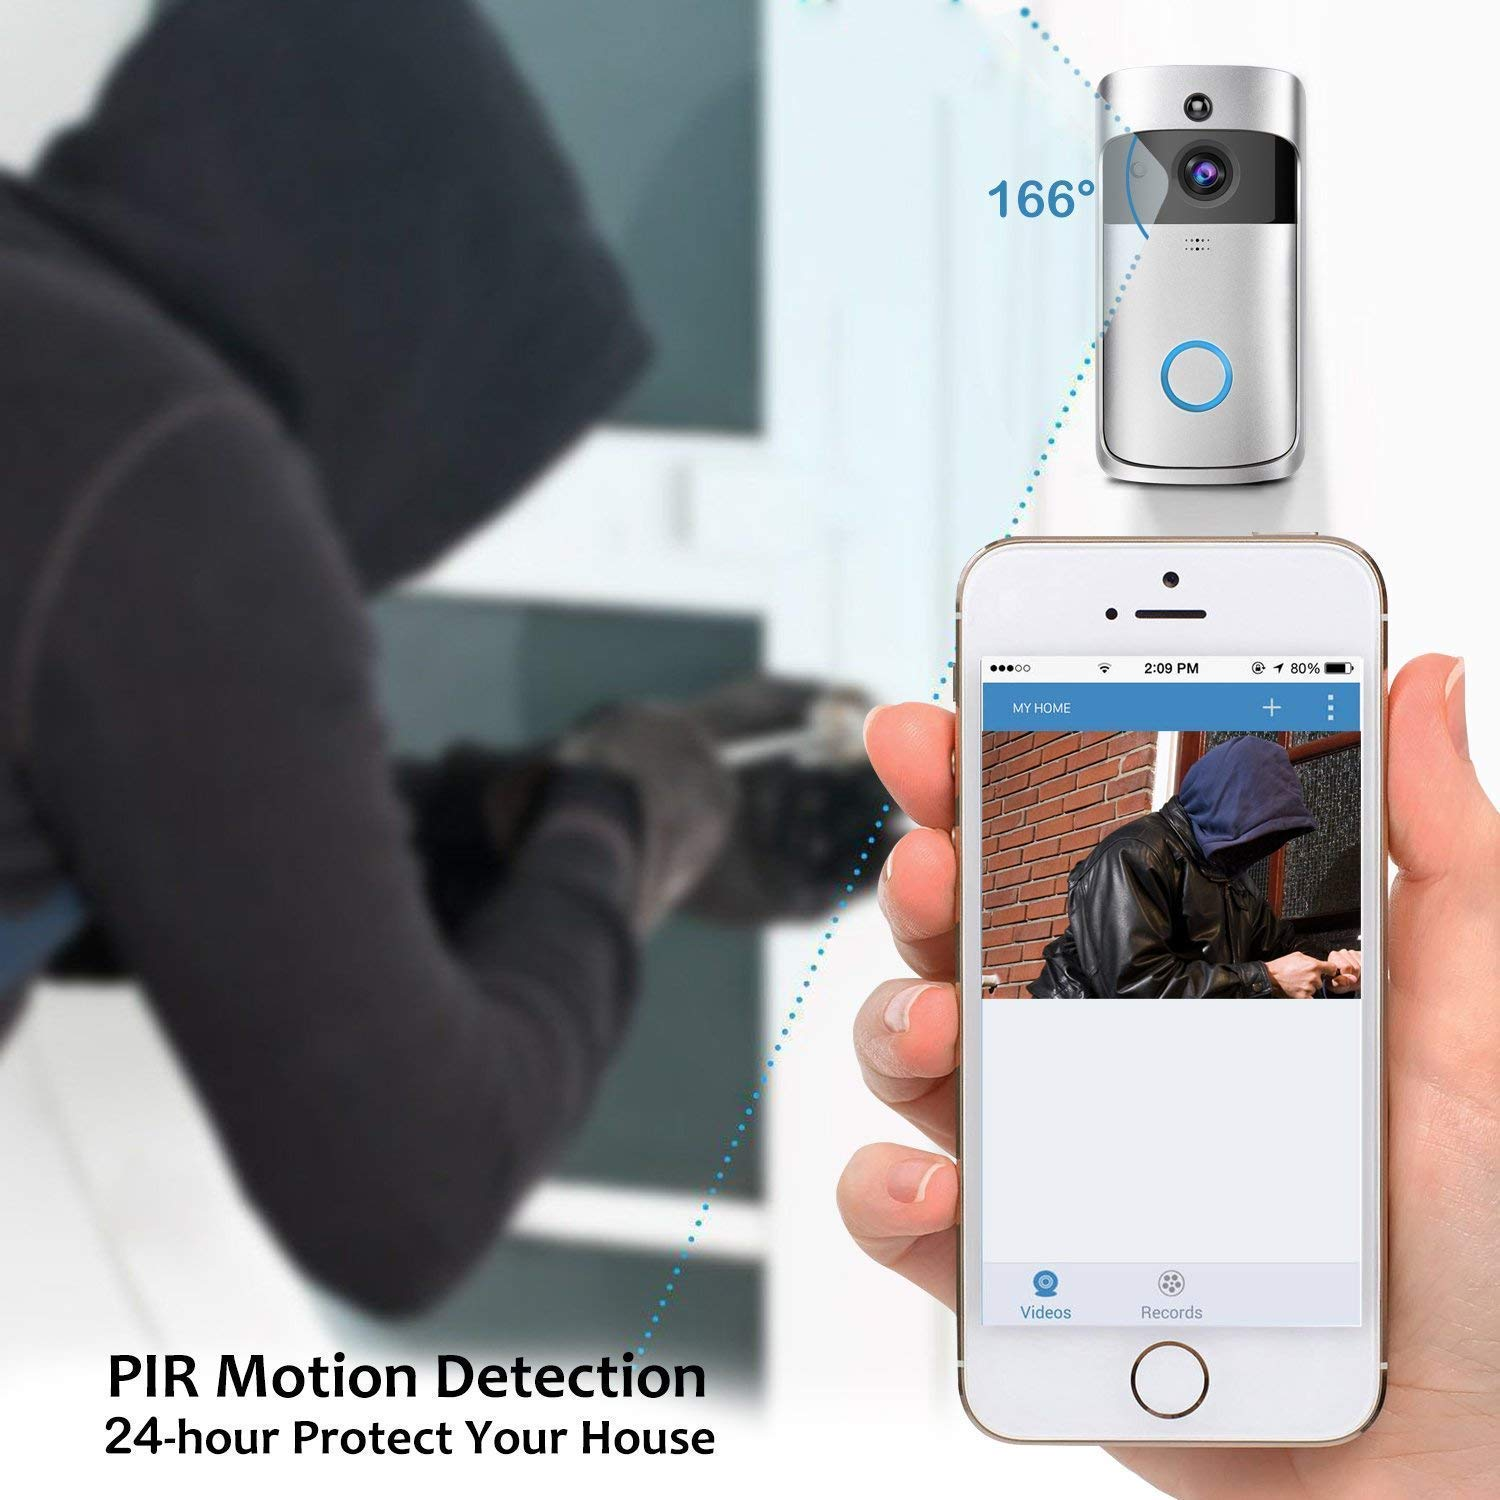 App Control for iOS and Android PIR Motion Detection Two-Way Audio LucBuy 2.4GHz 720P Wireless Doorbell Camera with Real-time Video WiFi Video Doorbell Night Vision